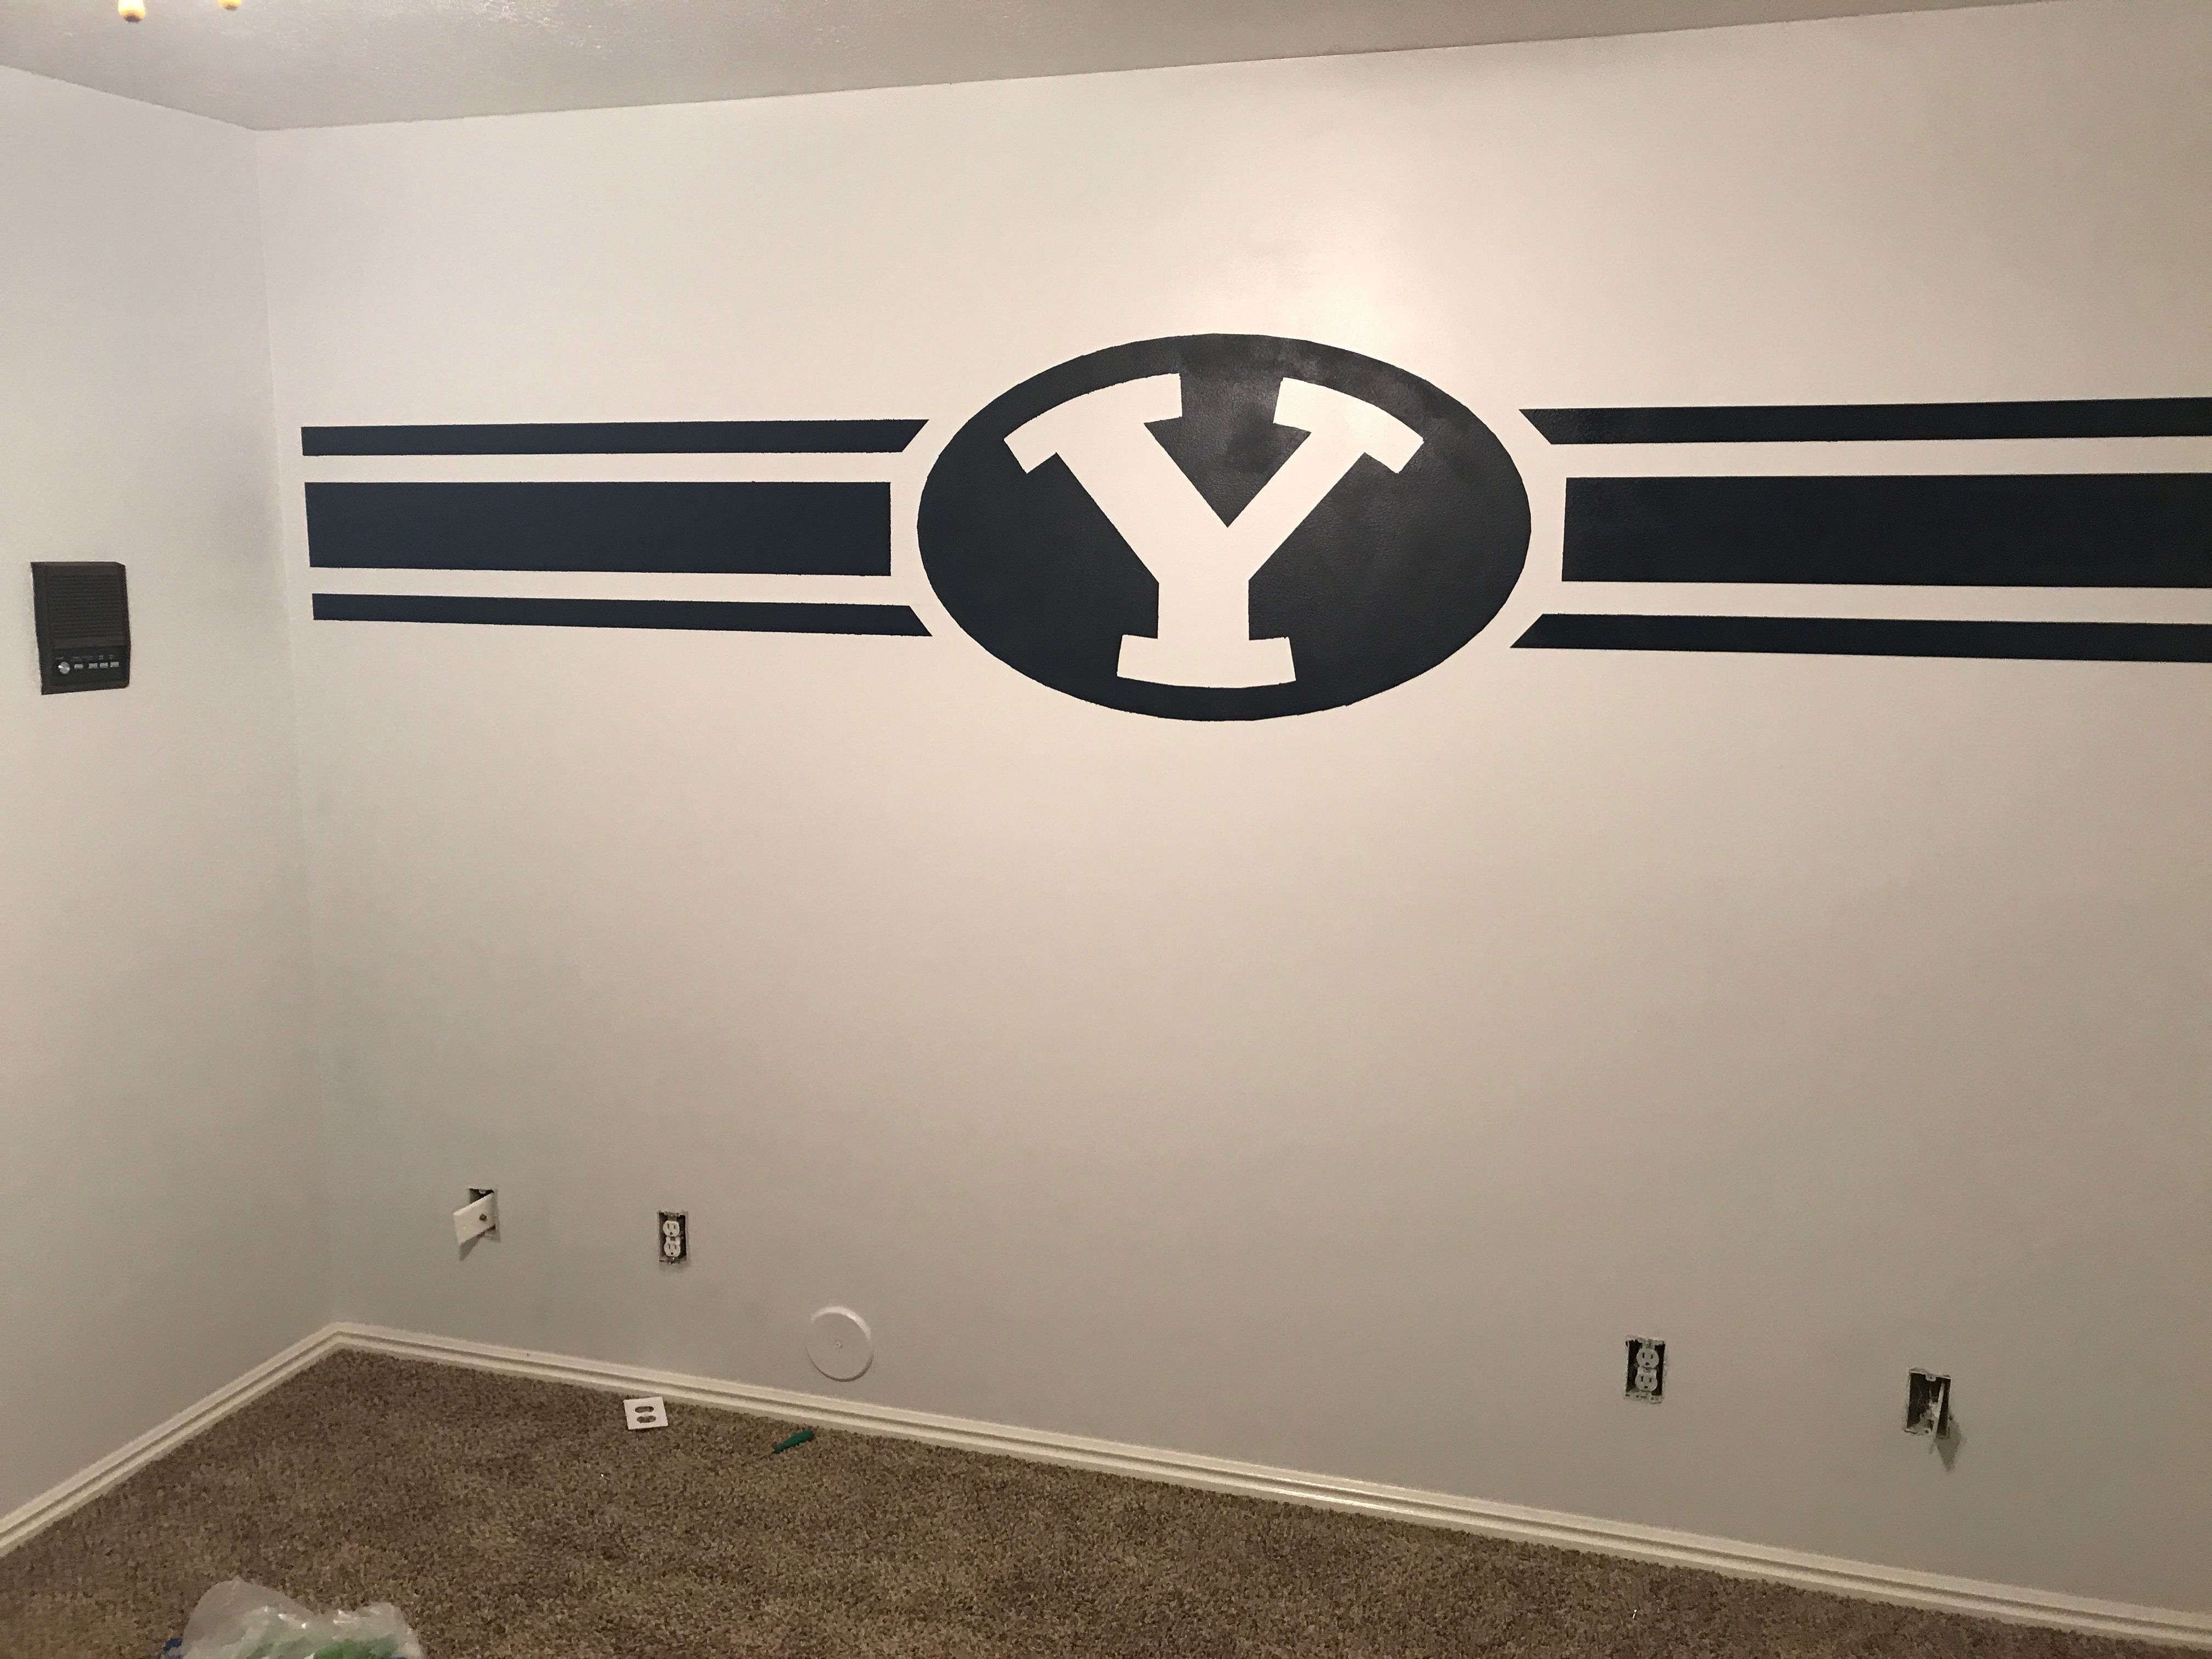 Byu Wall Byu Mancave Byu Man Cave Byu Cougars Byu Football Room Boy Wall Art Man Room Room Ideas Bedroom